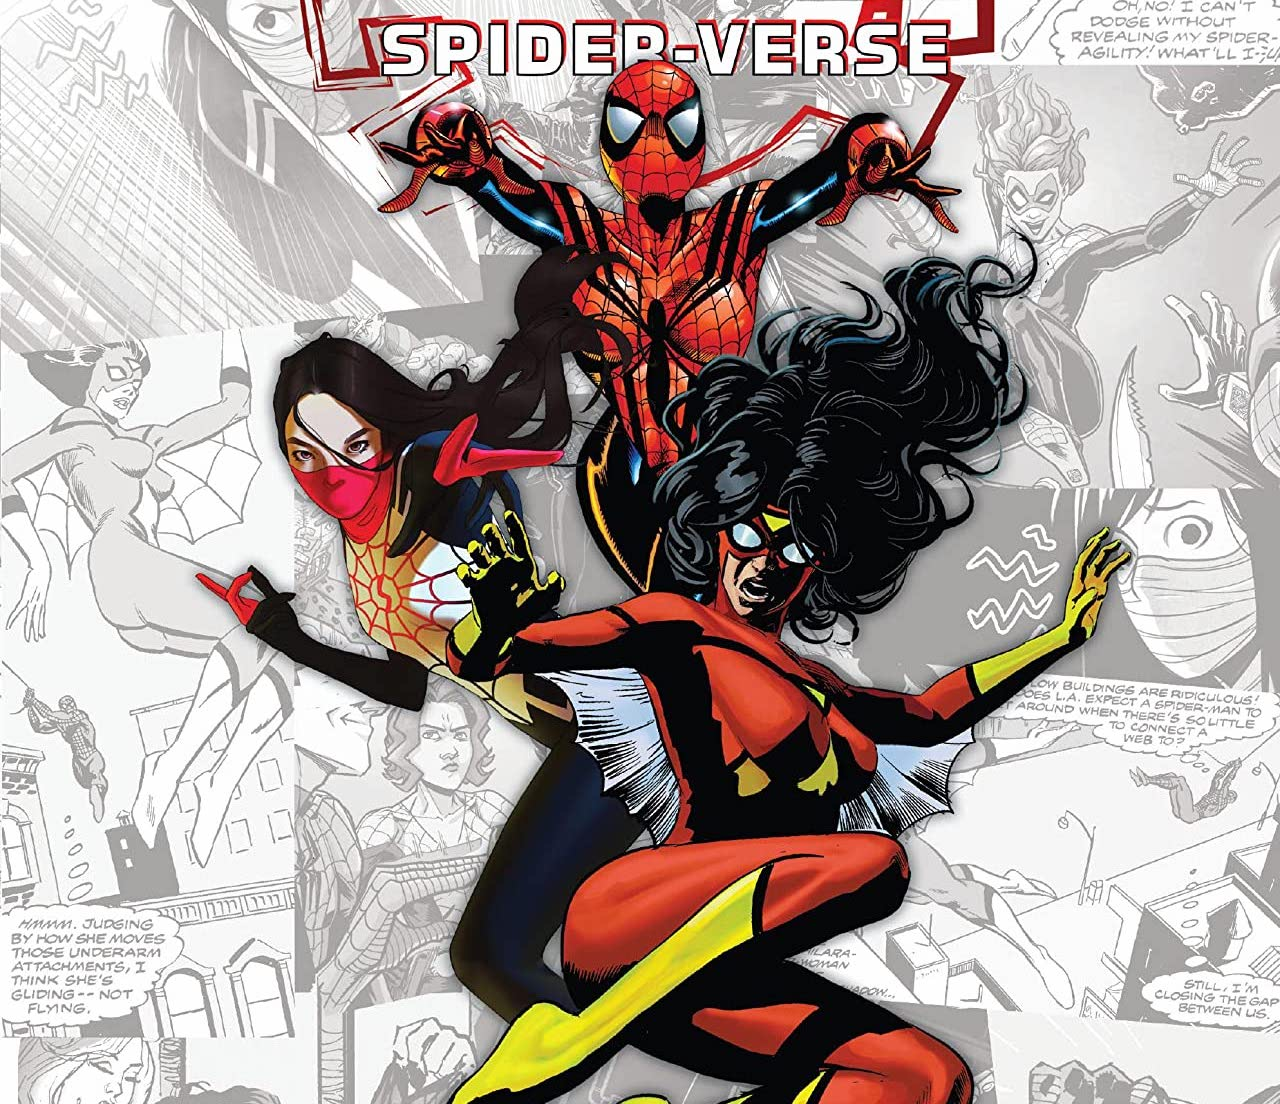 Get to know Silk, Spider-Woman, Spider-Girl, and Spiderling in this Spider-Women collection.